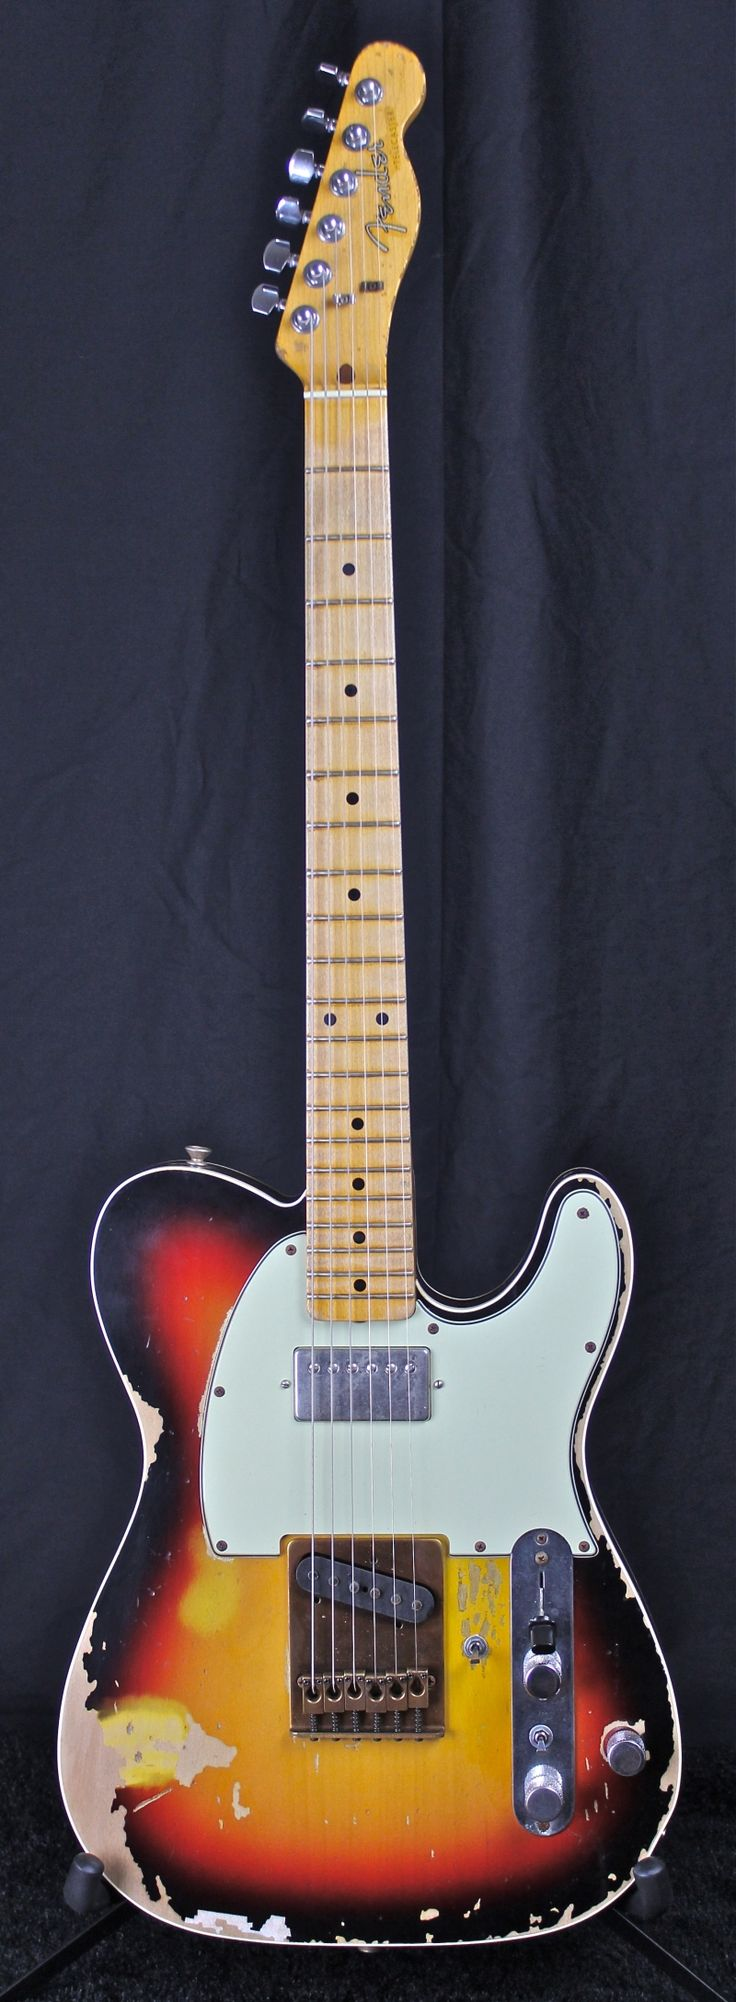 Andy Summers' famous Fender Telecaster with the additional Humbucker pickup